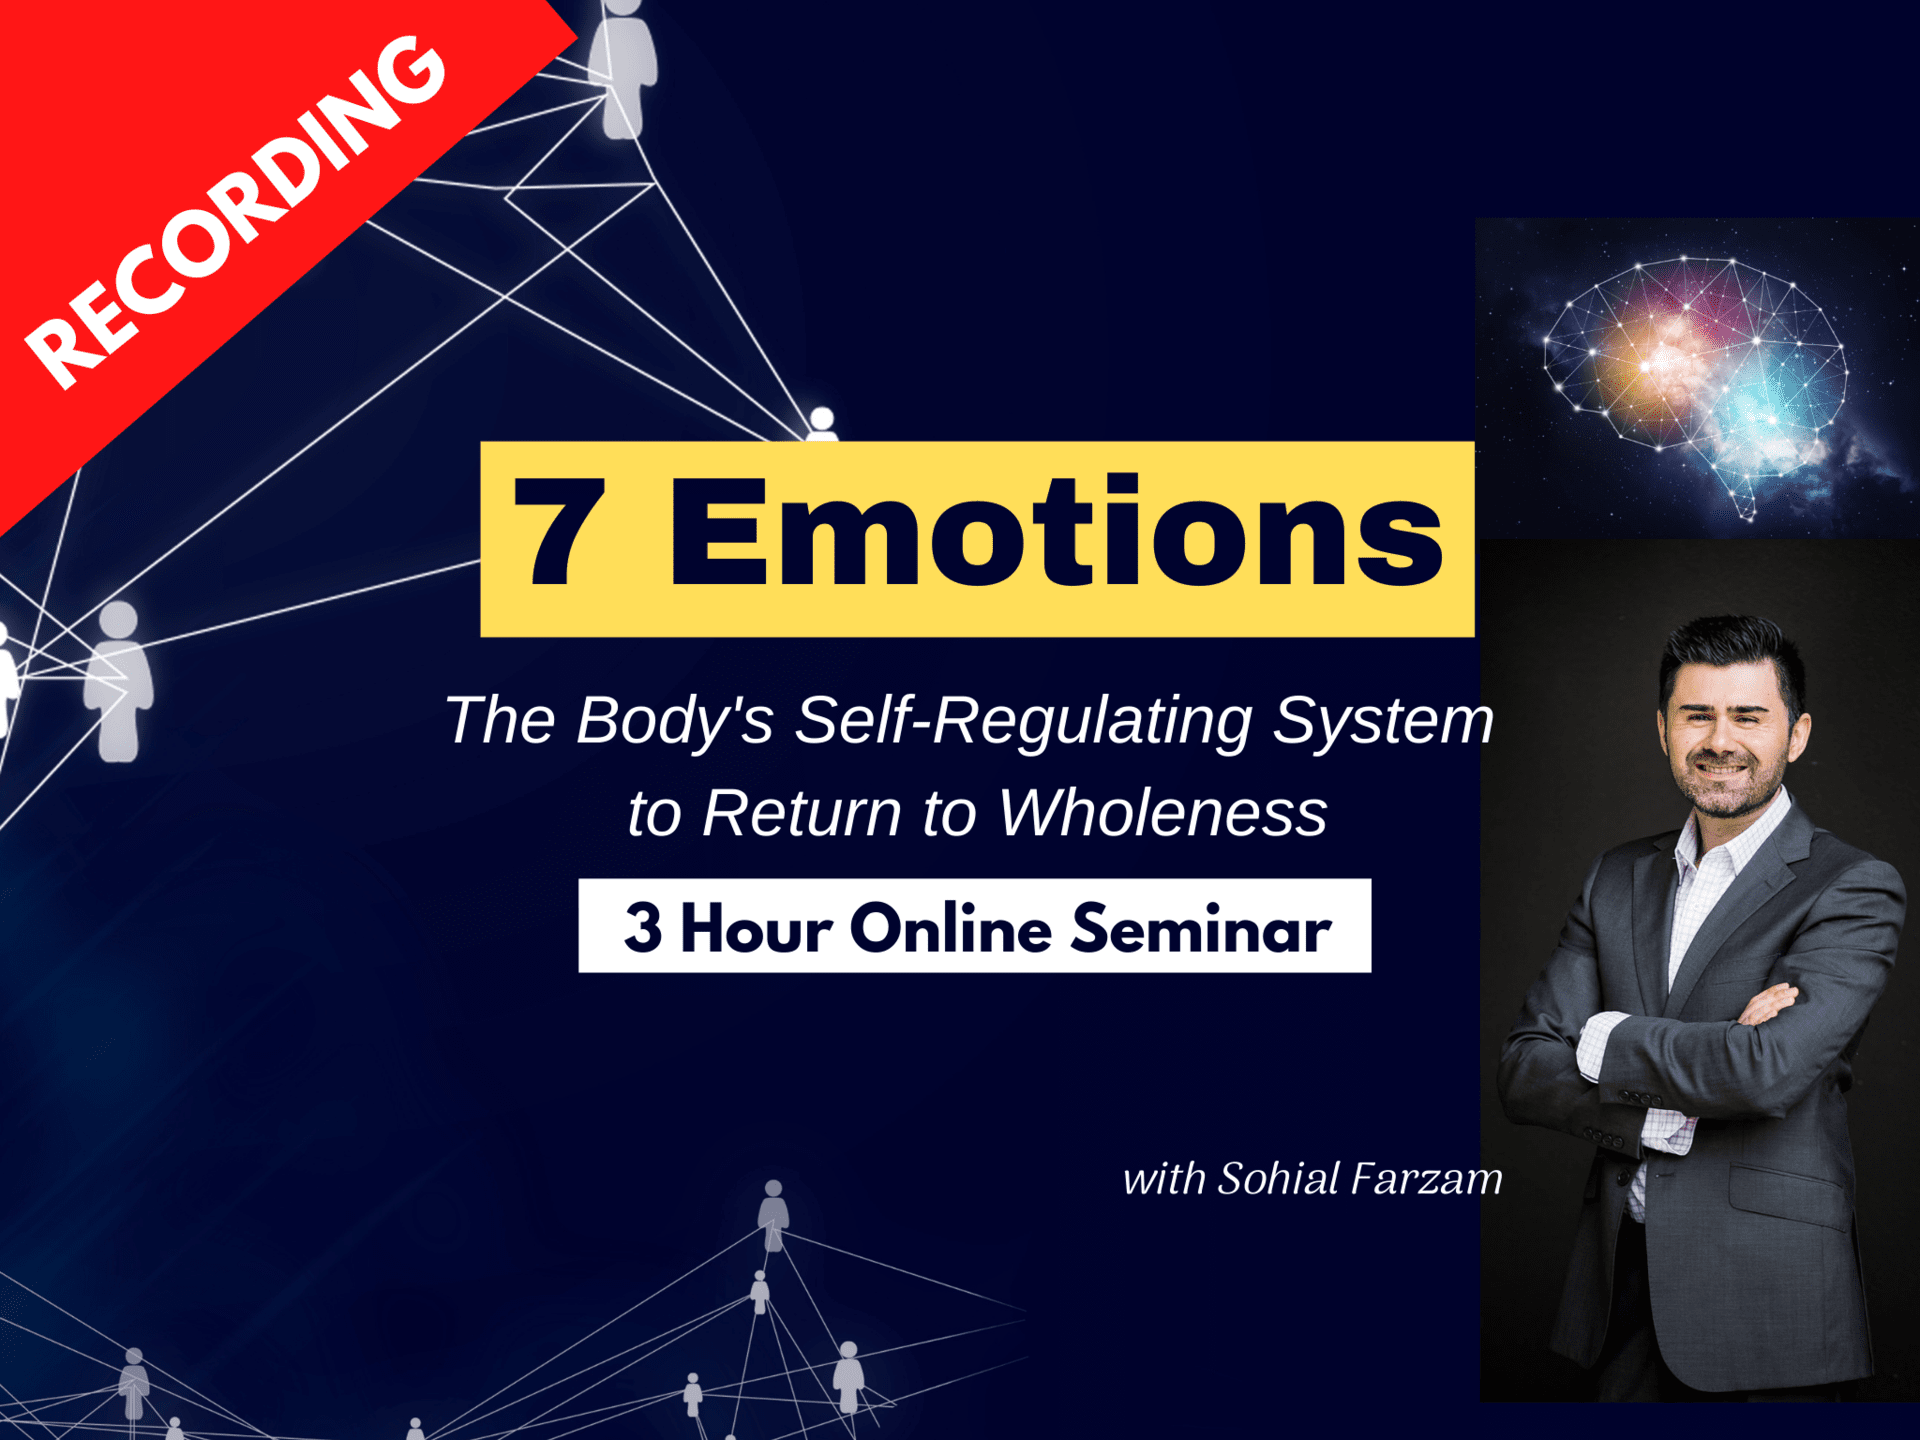 7 Emotions - 3 Hour Seminar (RECORDING)